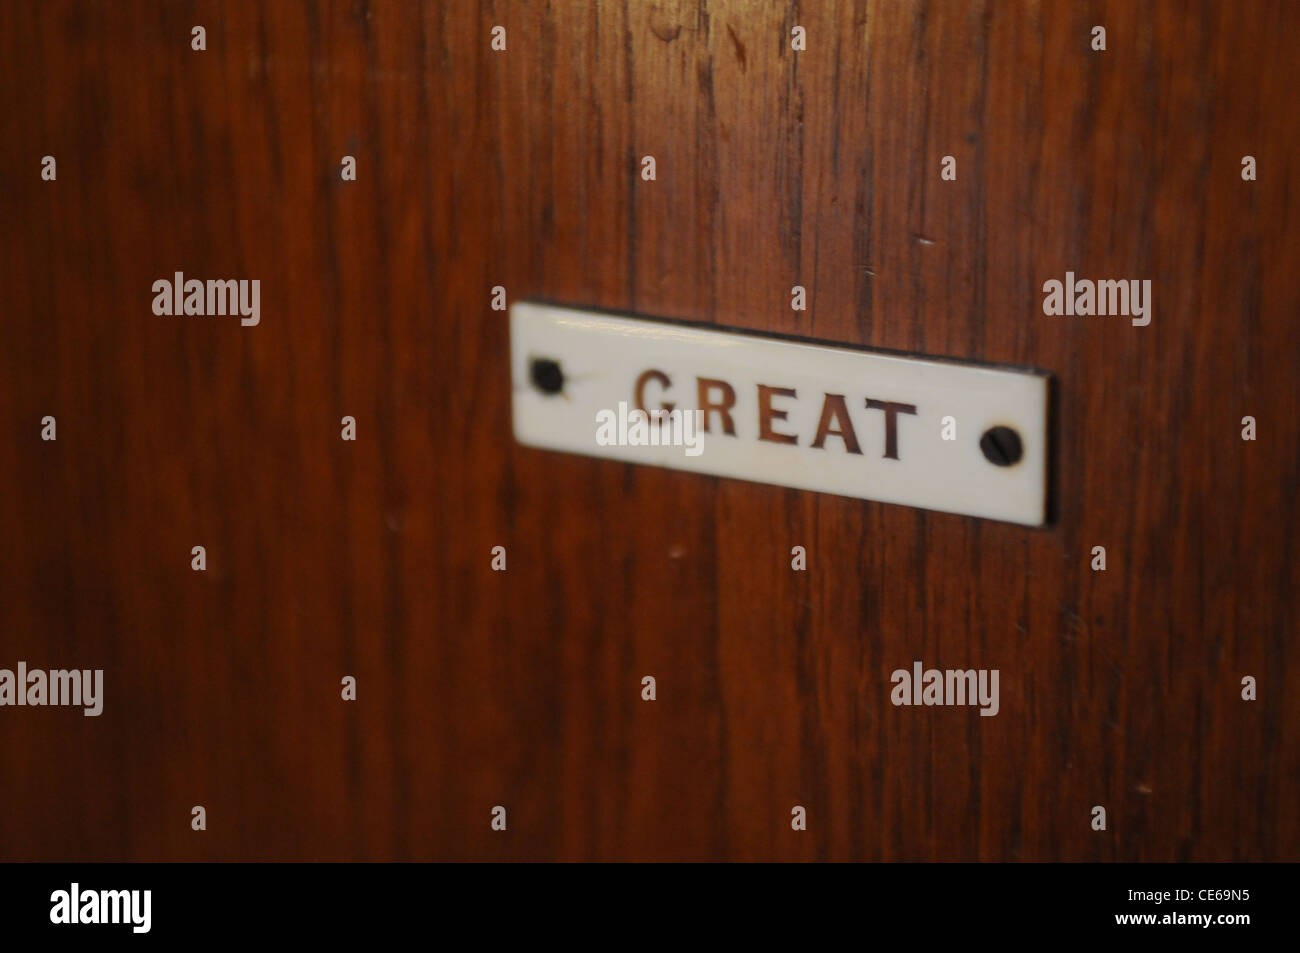 Label on a church Organ - Stock Image